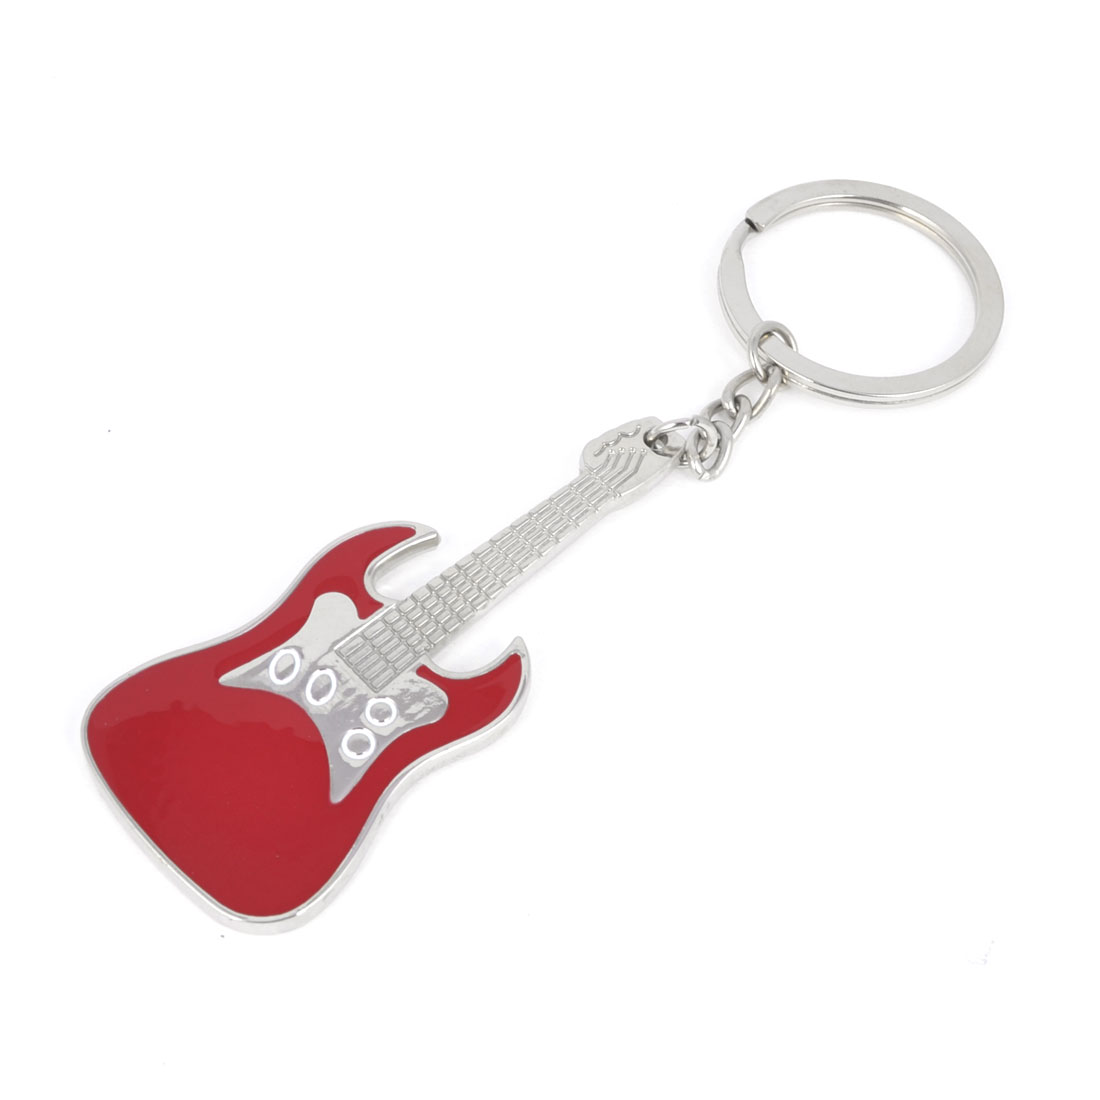 Guitar Design Pendant Keychain Key Ring Decor Silver Tone Red